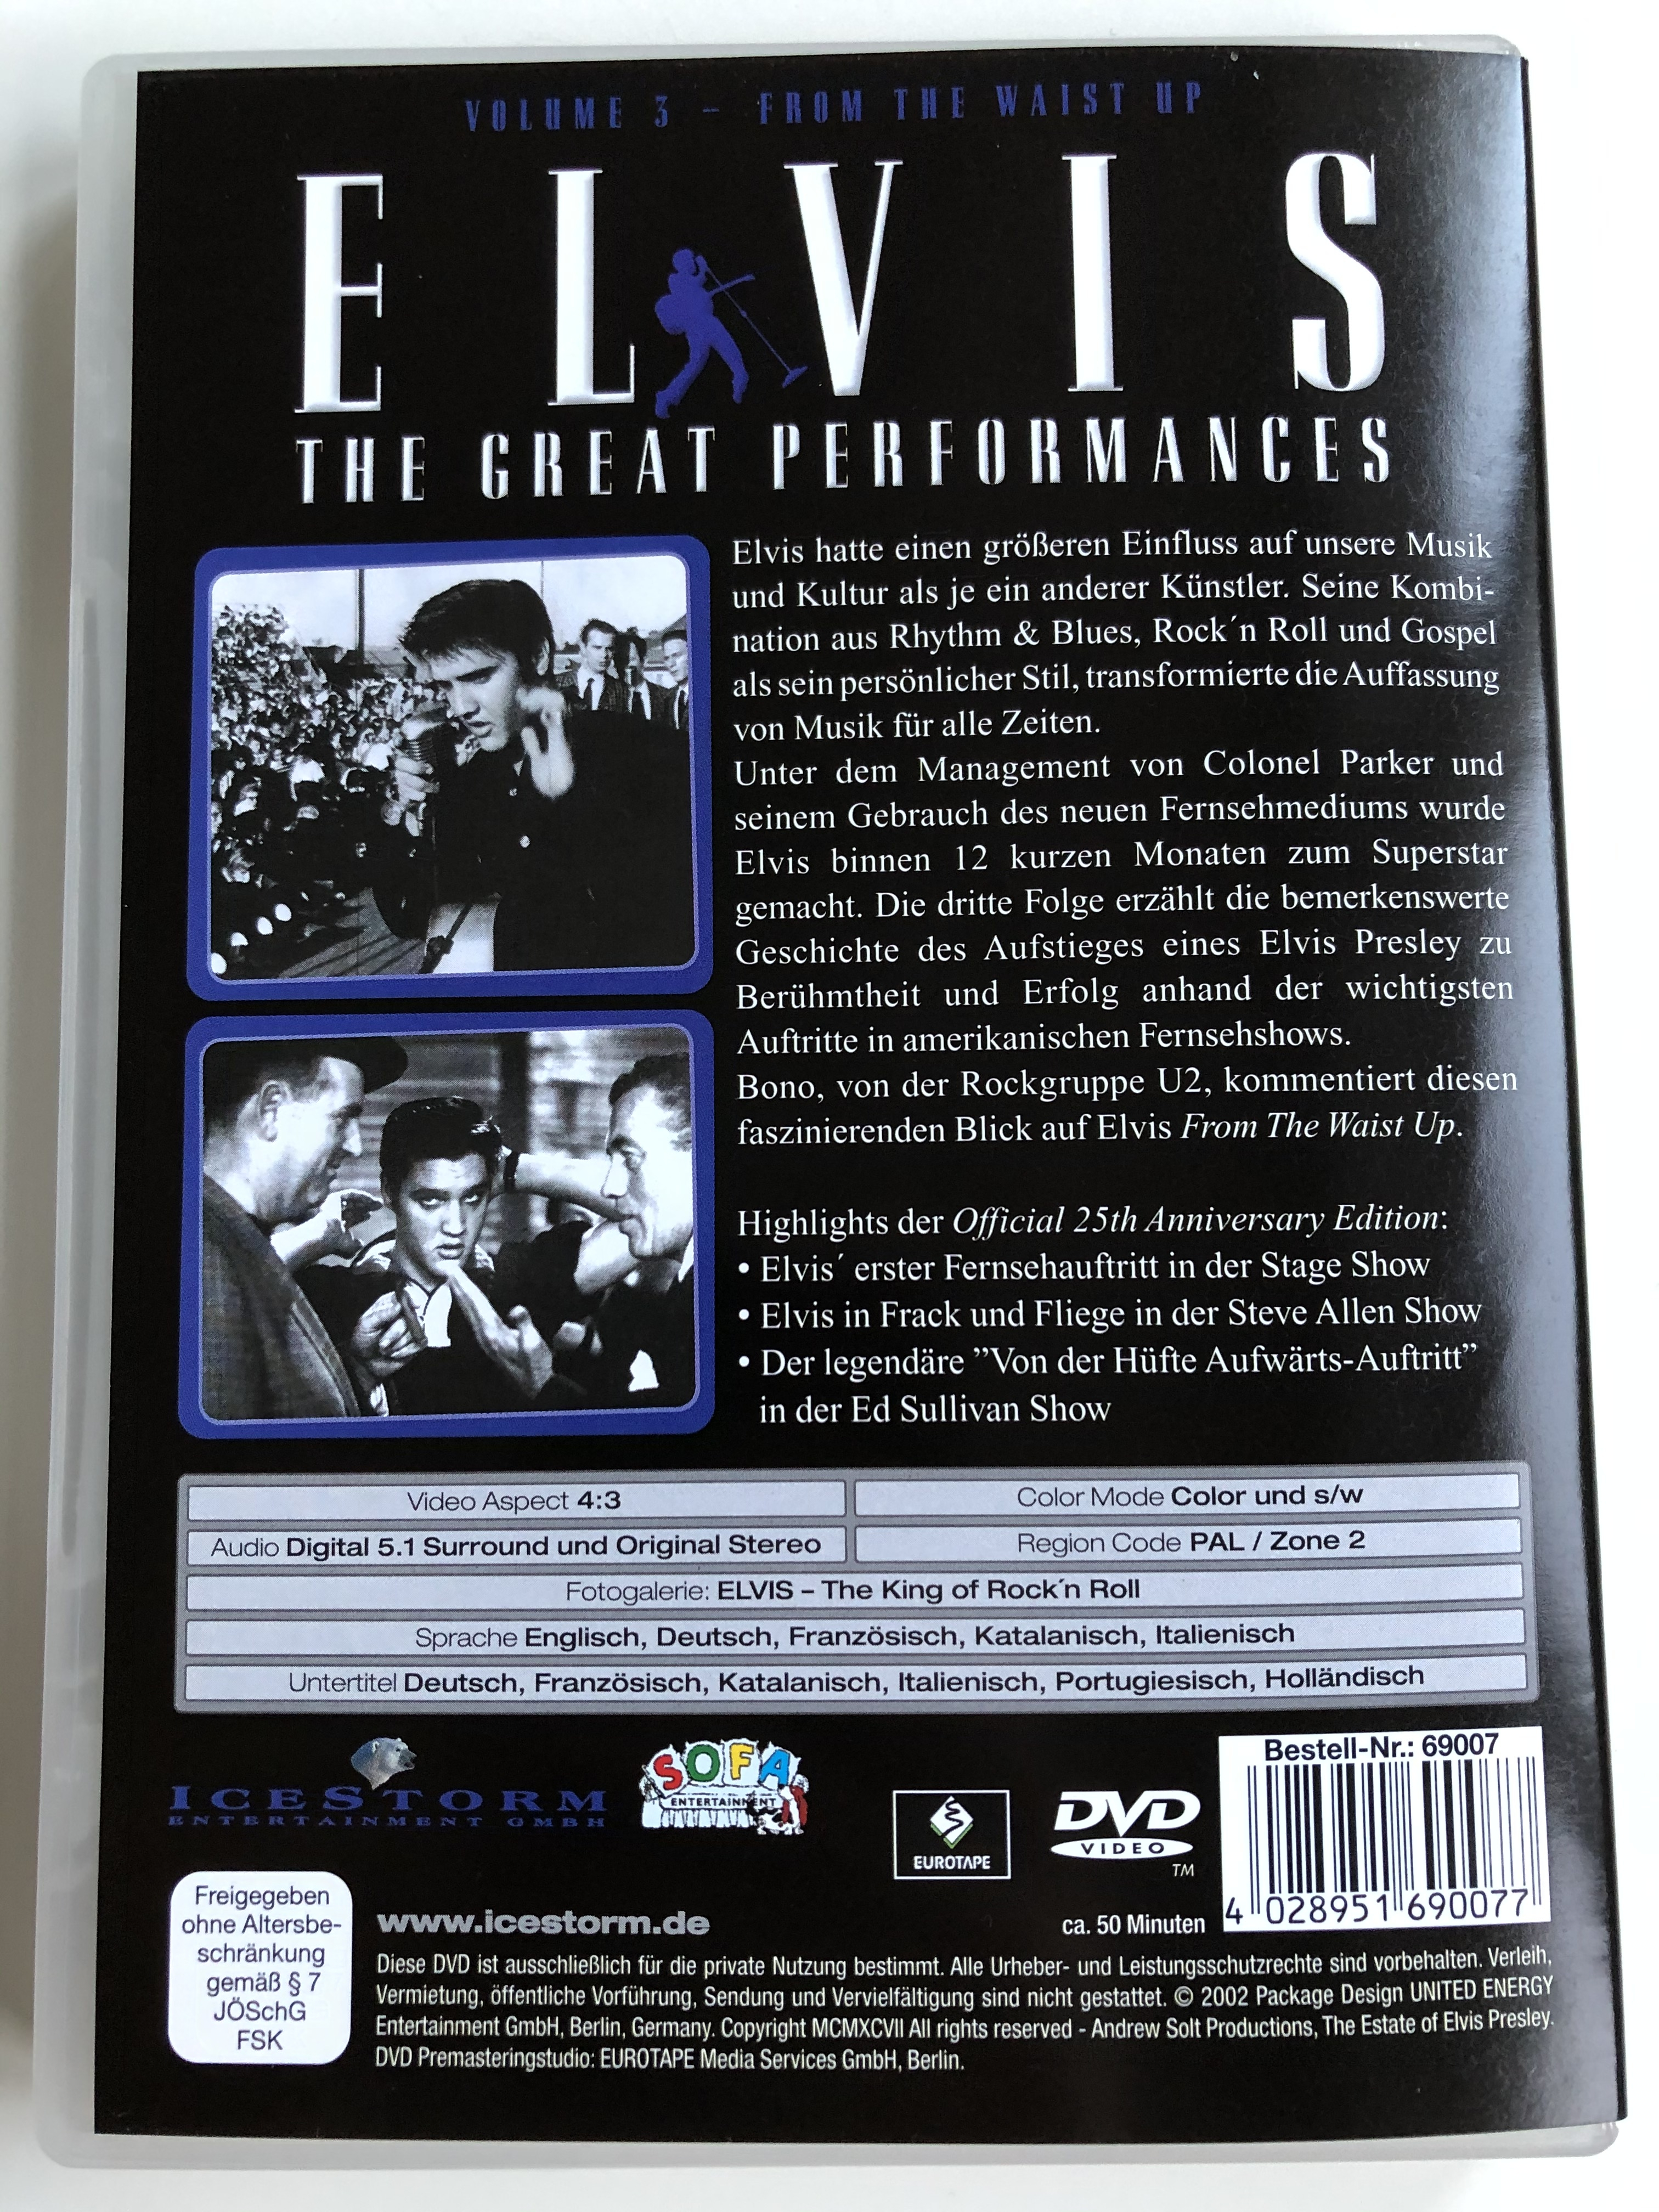 elvis-the-great-performances-dvd-volume-3-from-the-waist-up-2.jpg